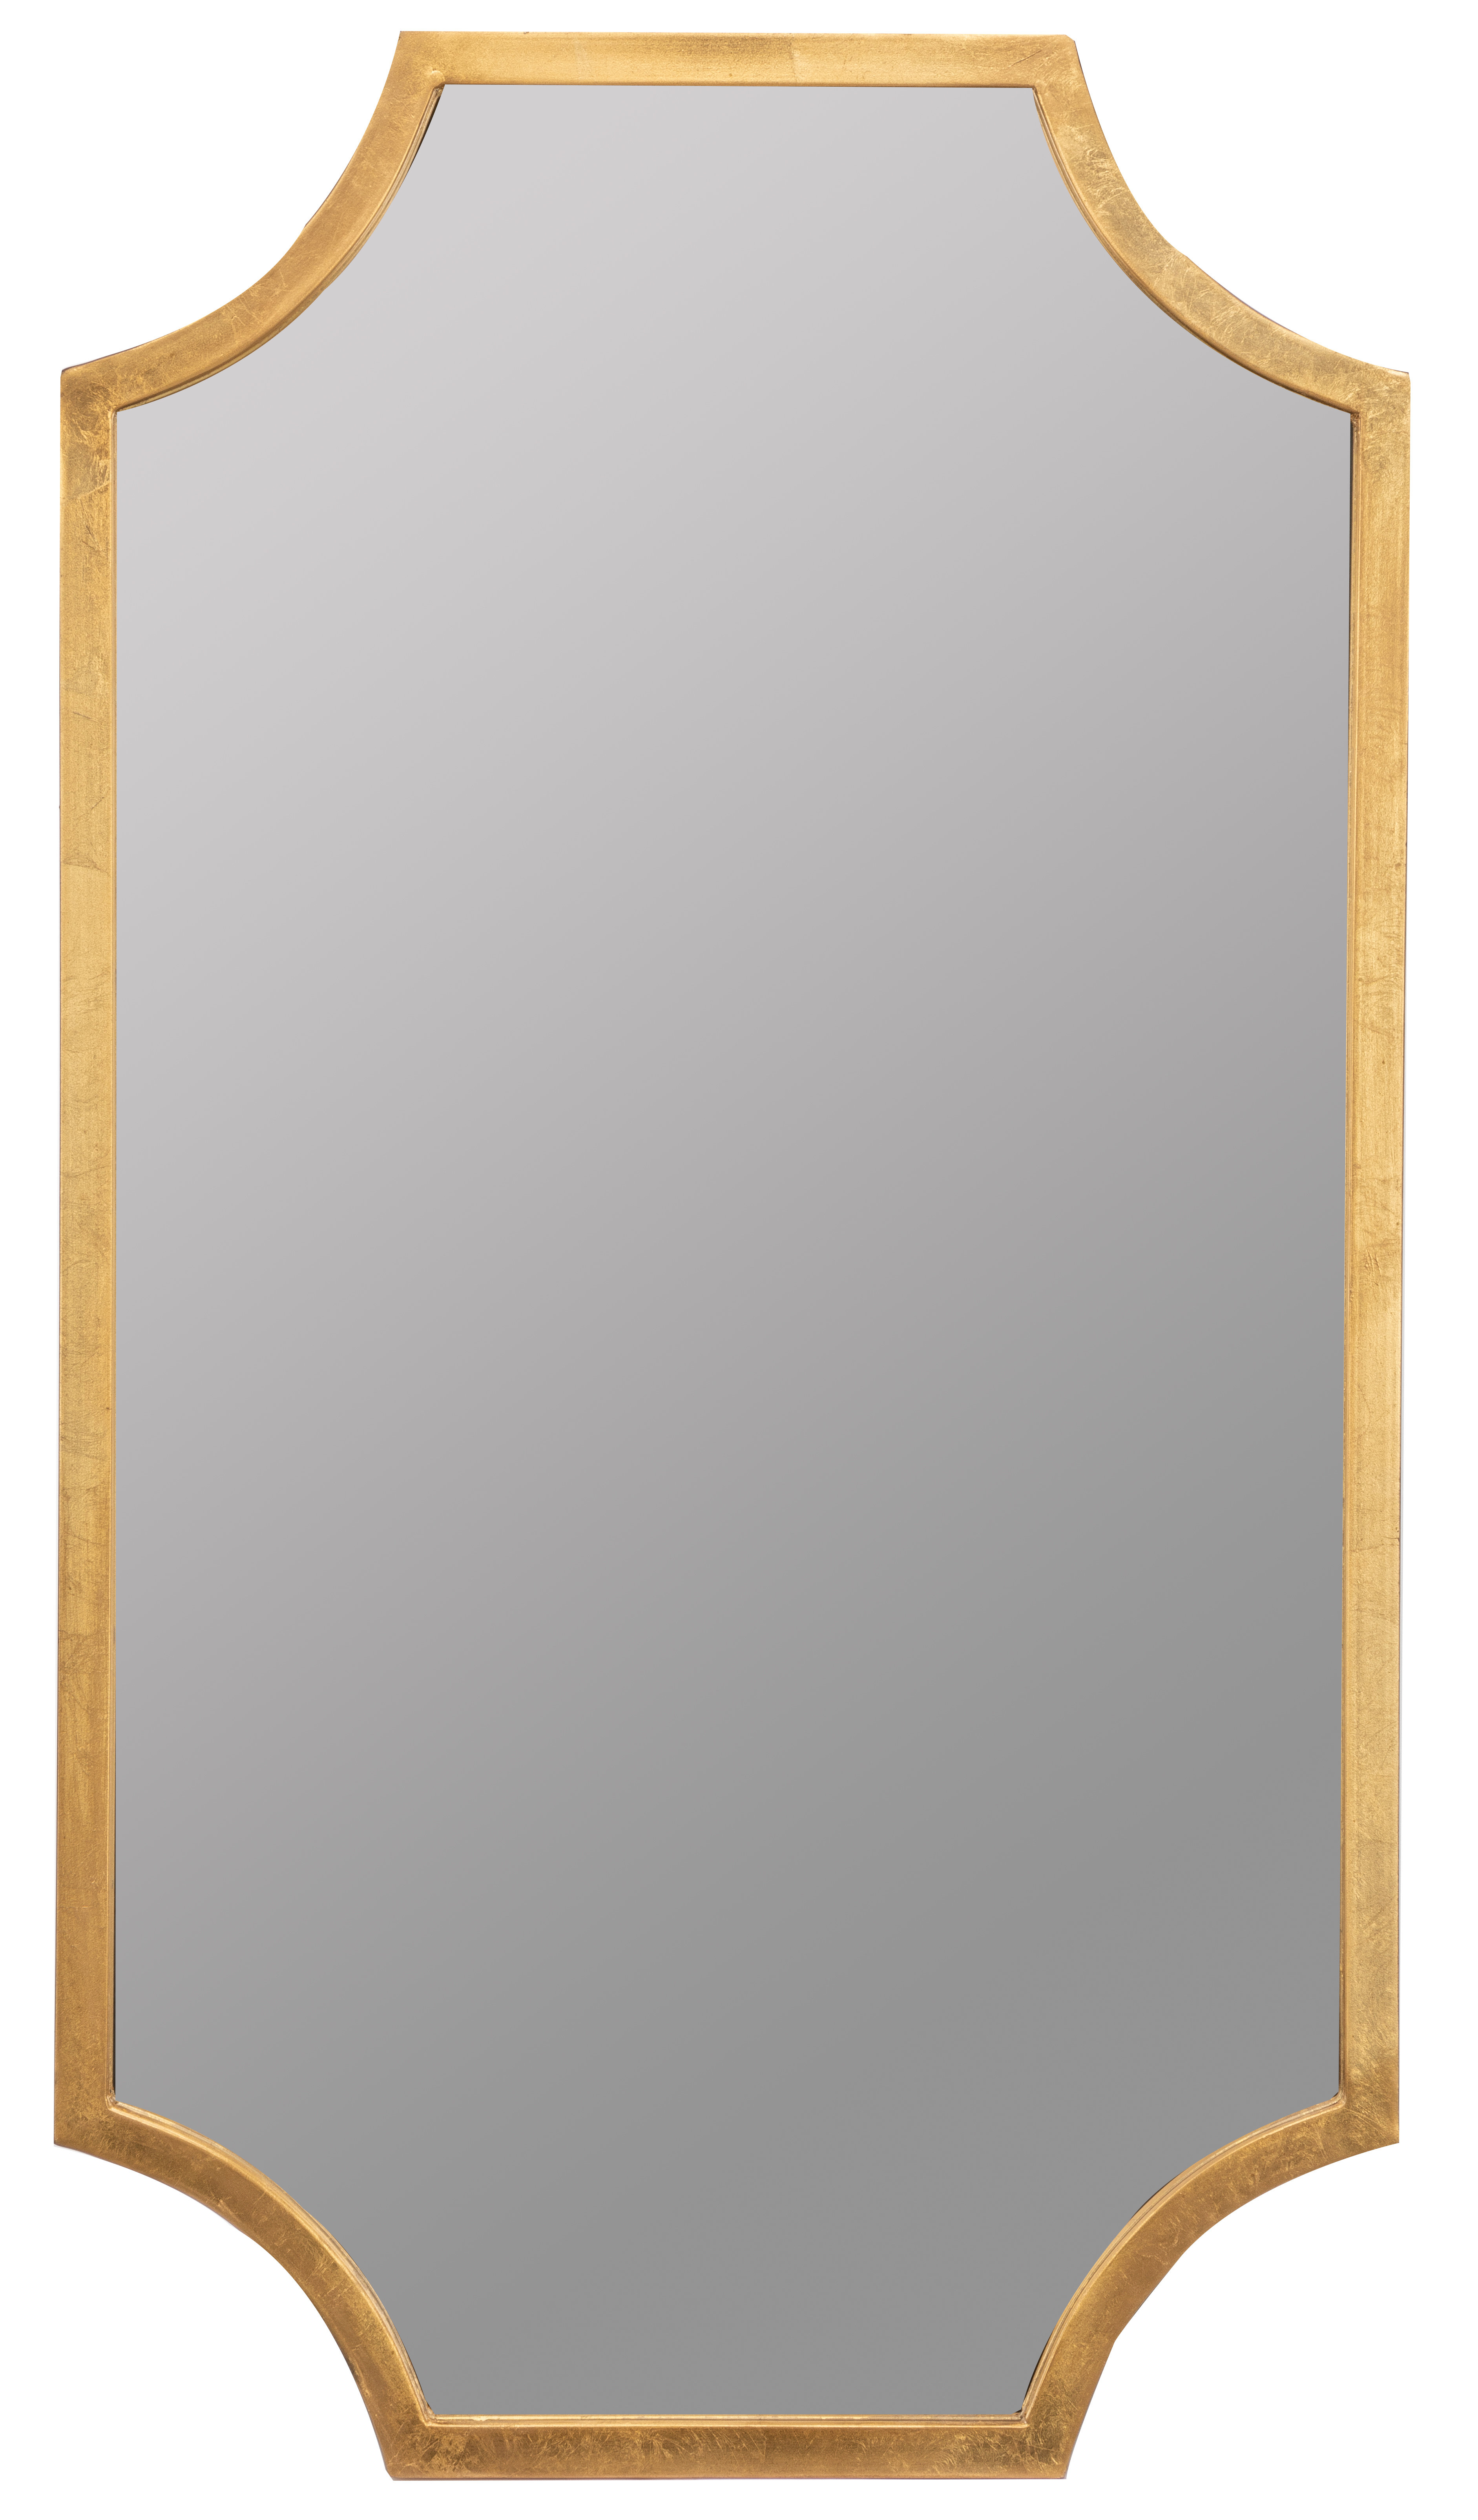 Brought Accent Mirror For Guidinha Modern & Contemporary Accent Mirrors (View 3 of 30)